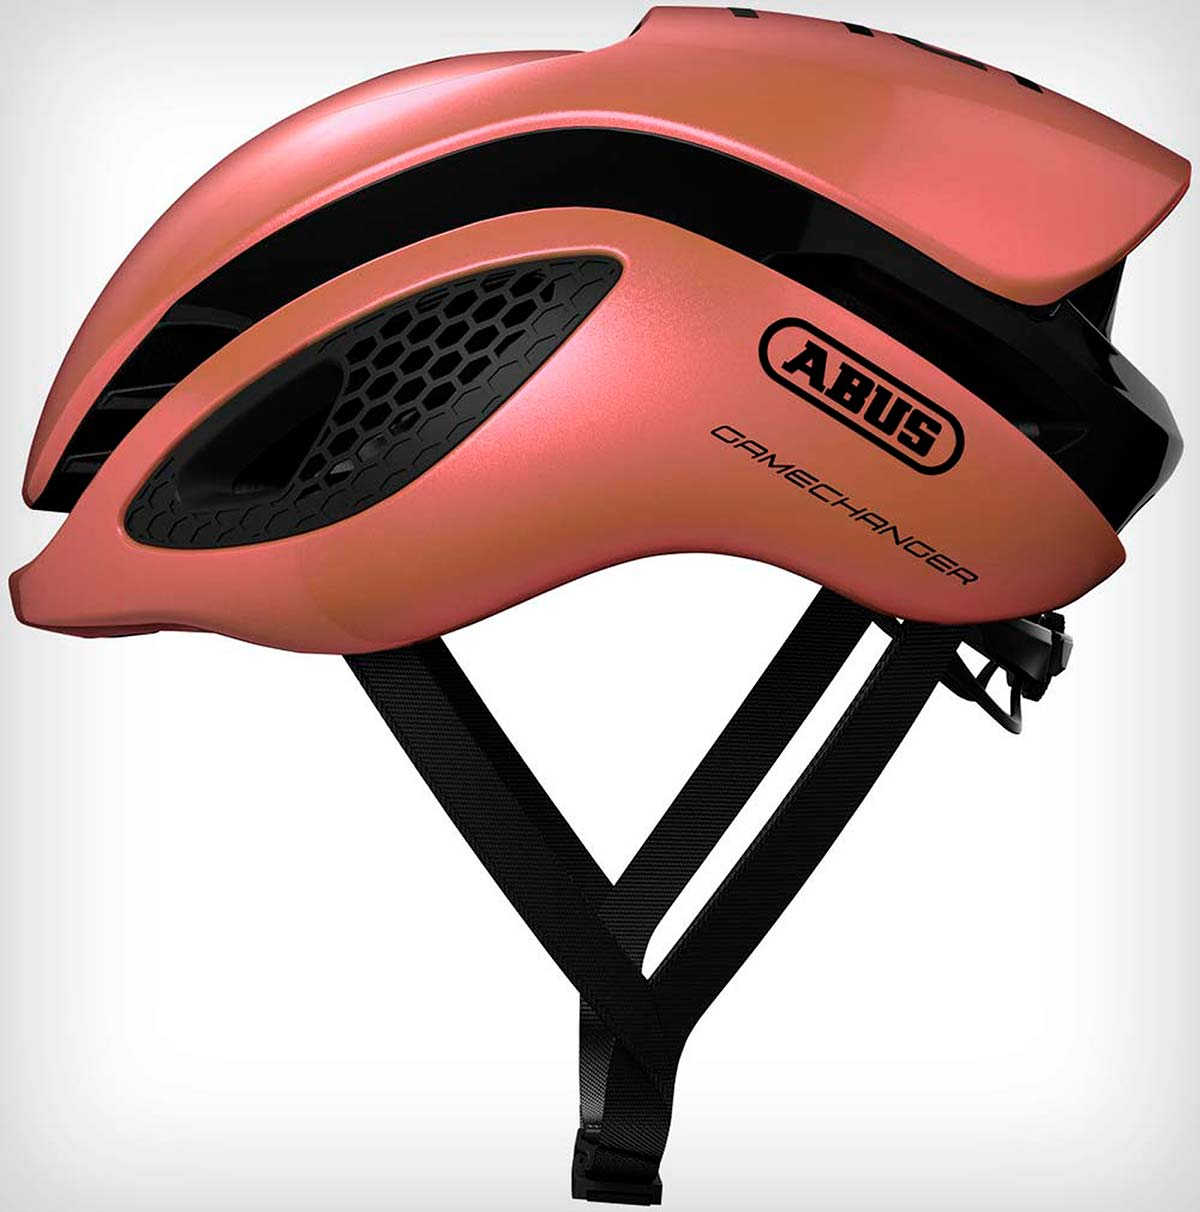 En TodoMountainBike: El casco ABUS GameChanger recibe dos exclusivos colores